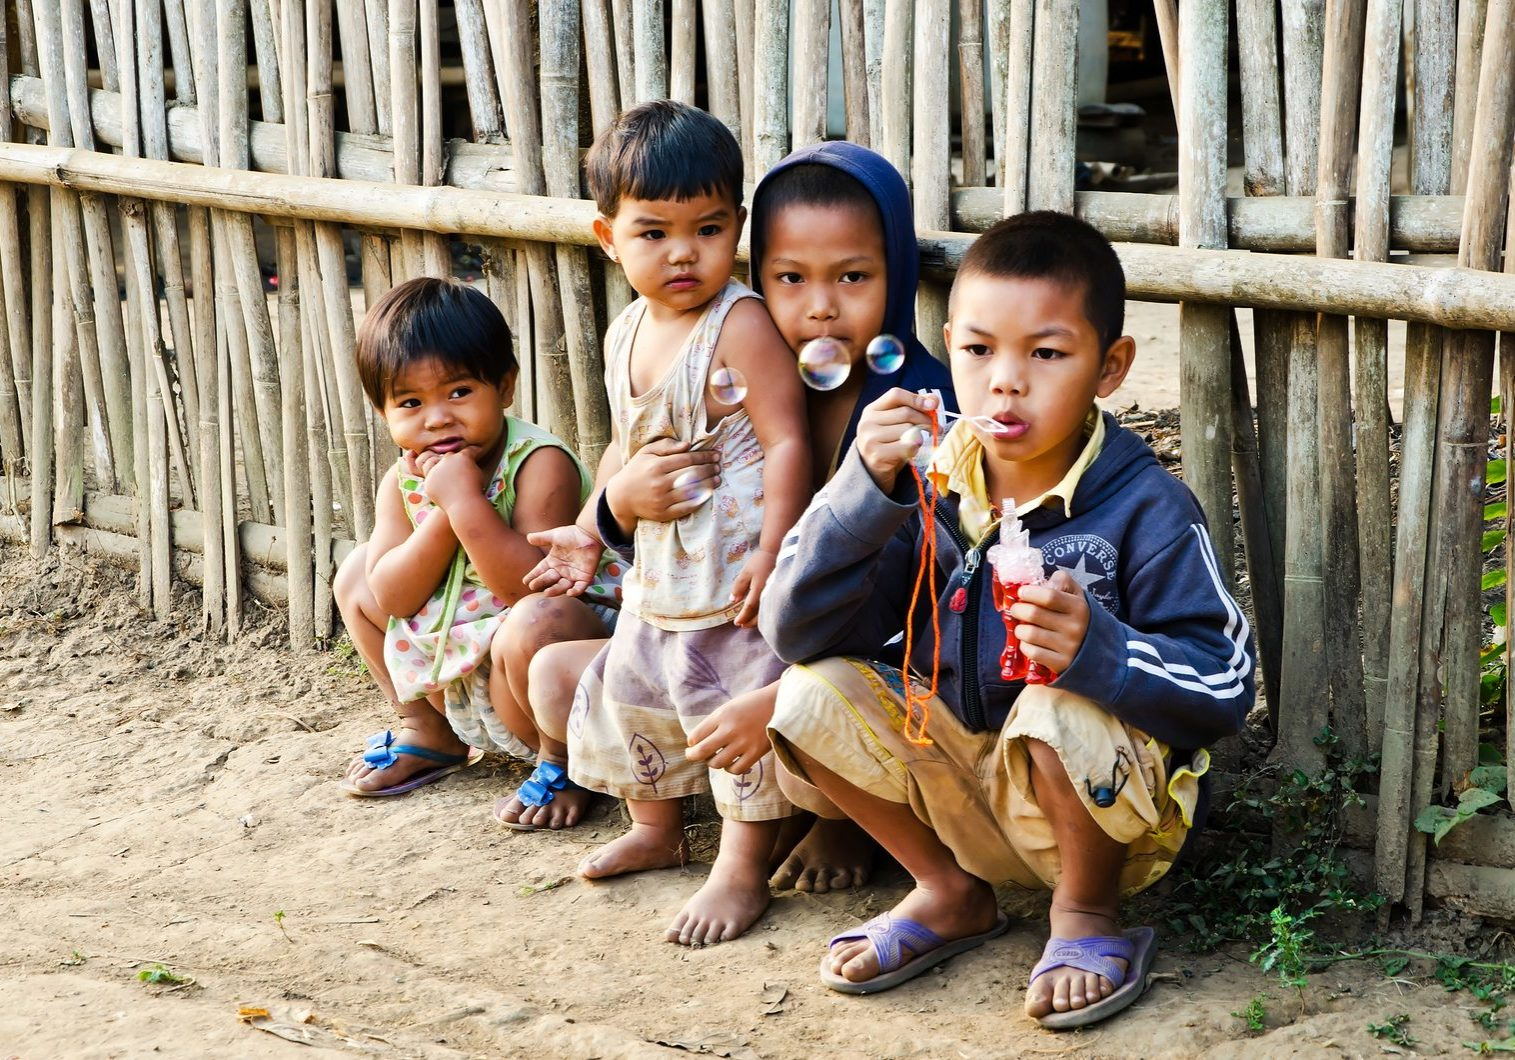 KANCHANABURI THAILAND-January 29: An unidentified Mon children 5-12 years old playing with bubbles on January 29 2012 at KANCHANABURI THAILAND. Mon are an ethnic group spread in Thailand.